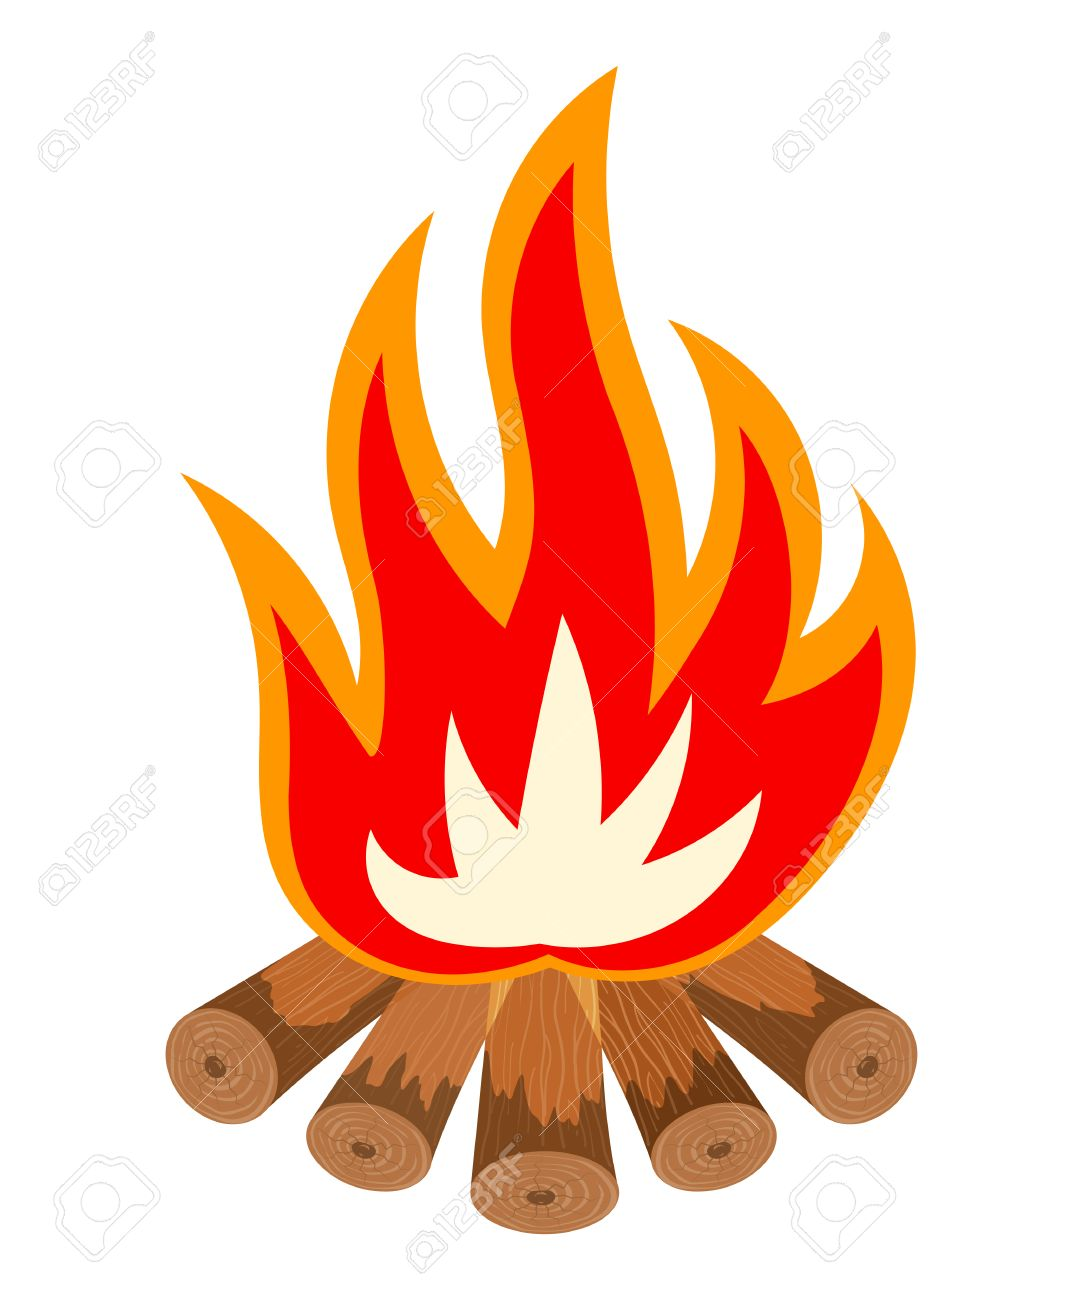 cartoon illustration of a fire is not white bonfire isolate rh 123rf com bonfire cartoon tumblr cartoon bonfire night images